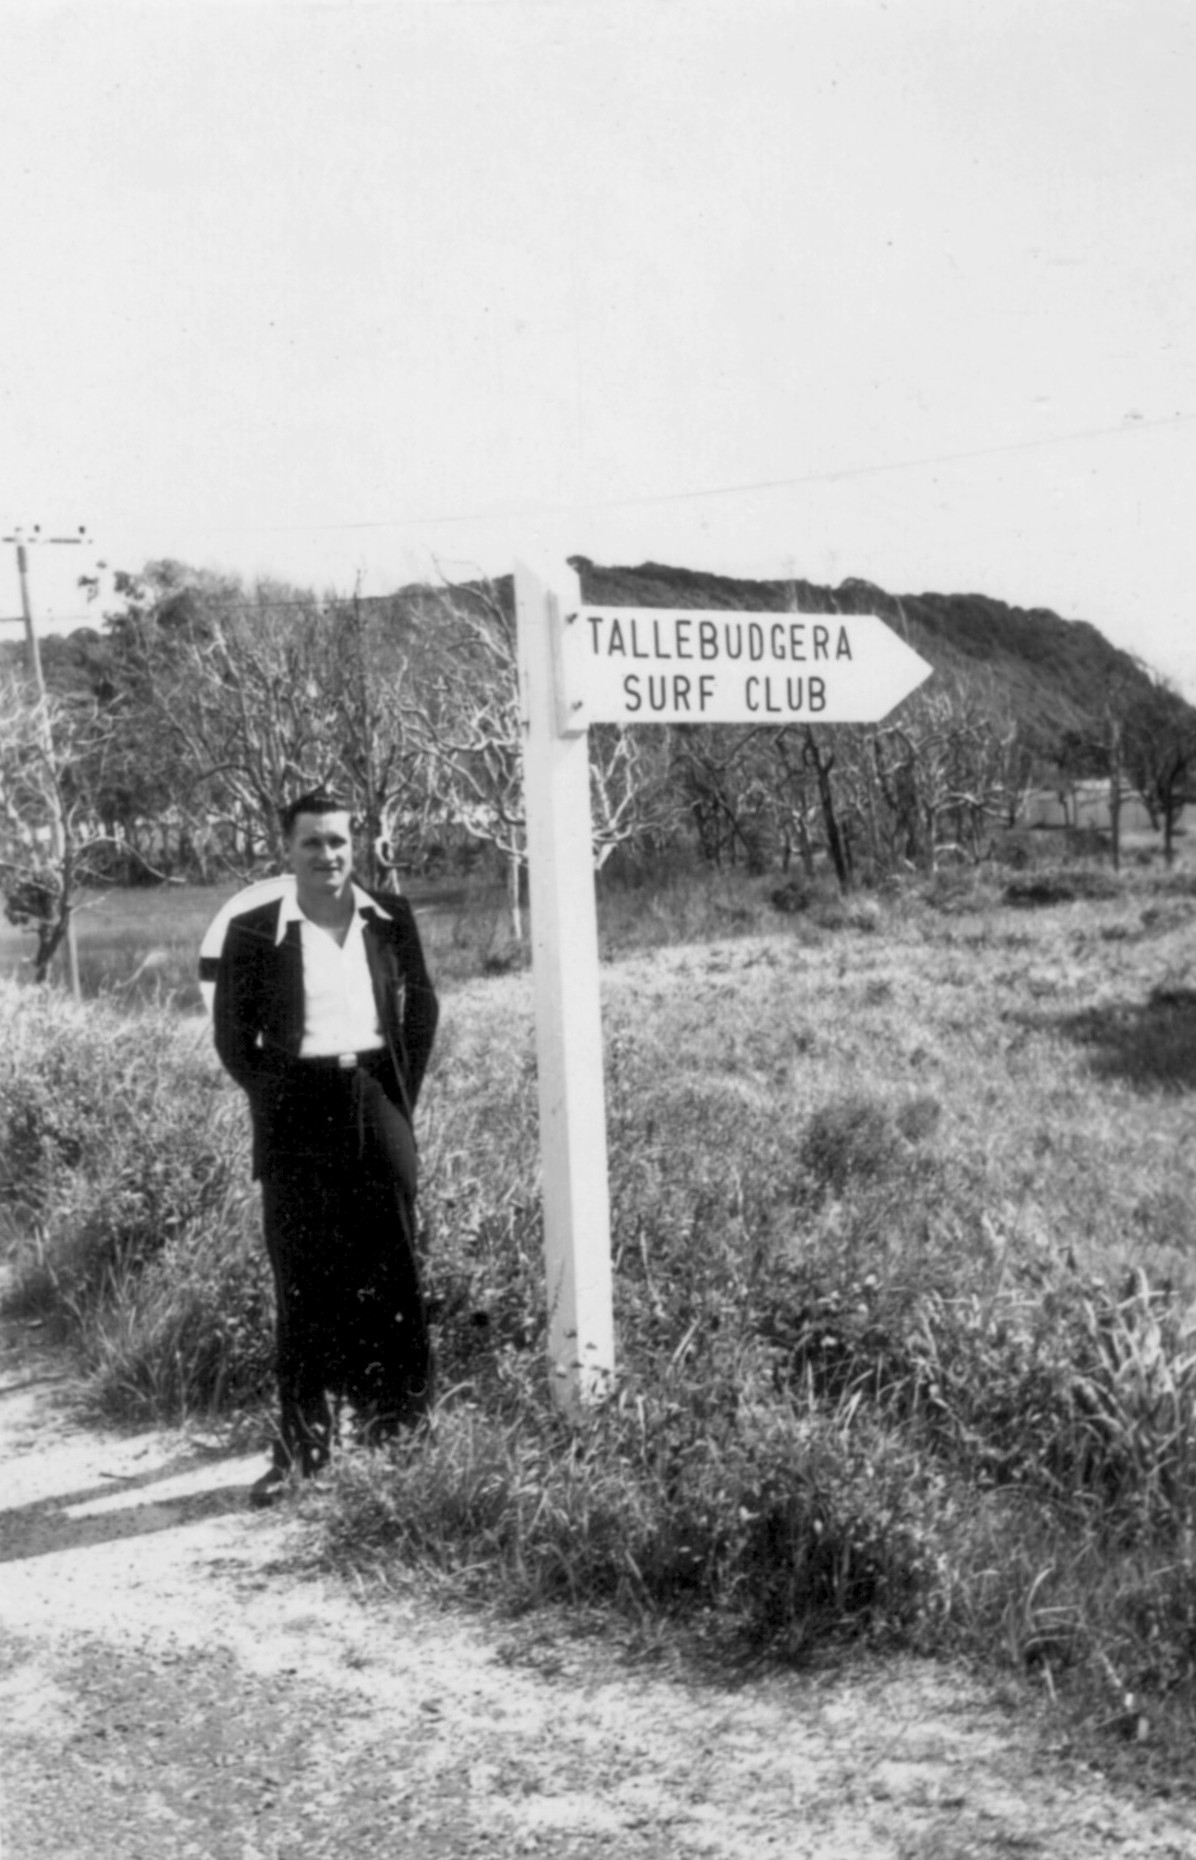 The track to Tallebudgera SLSC